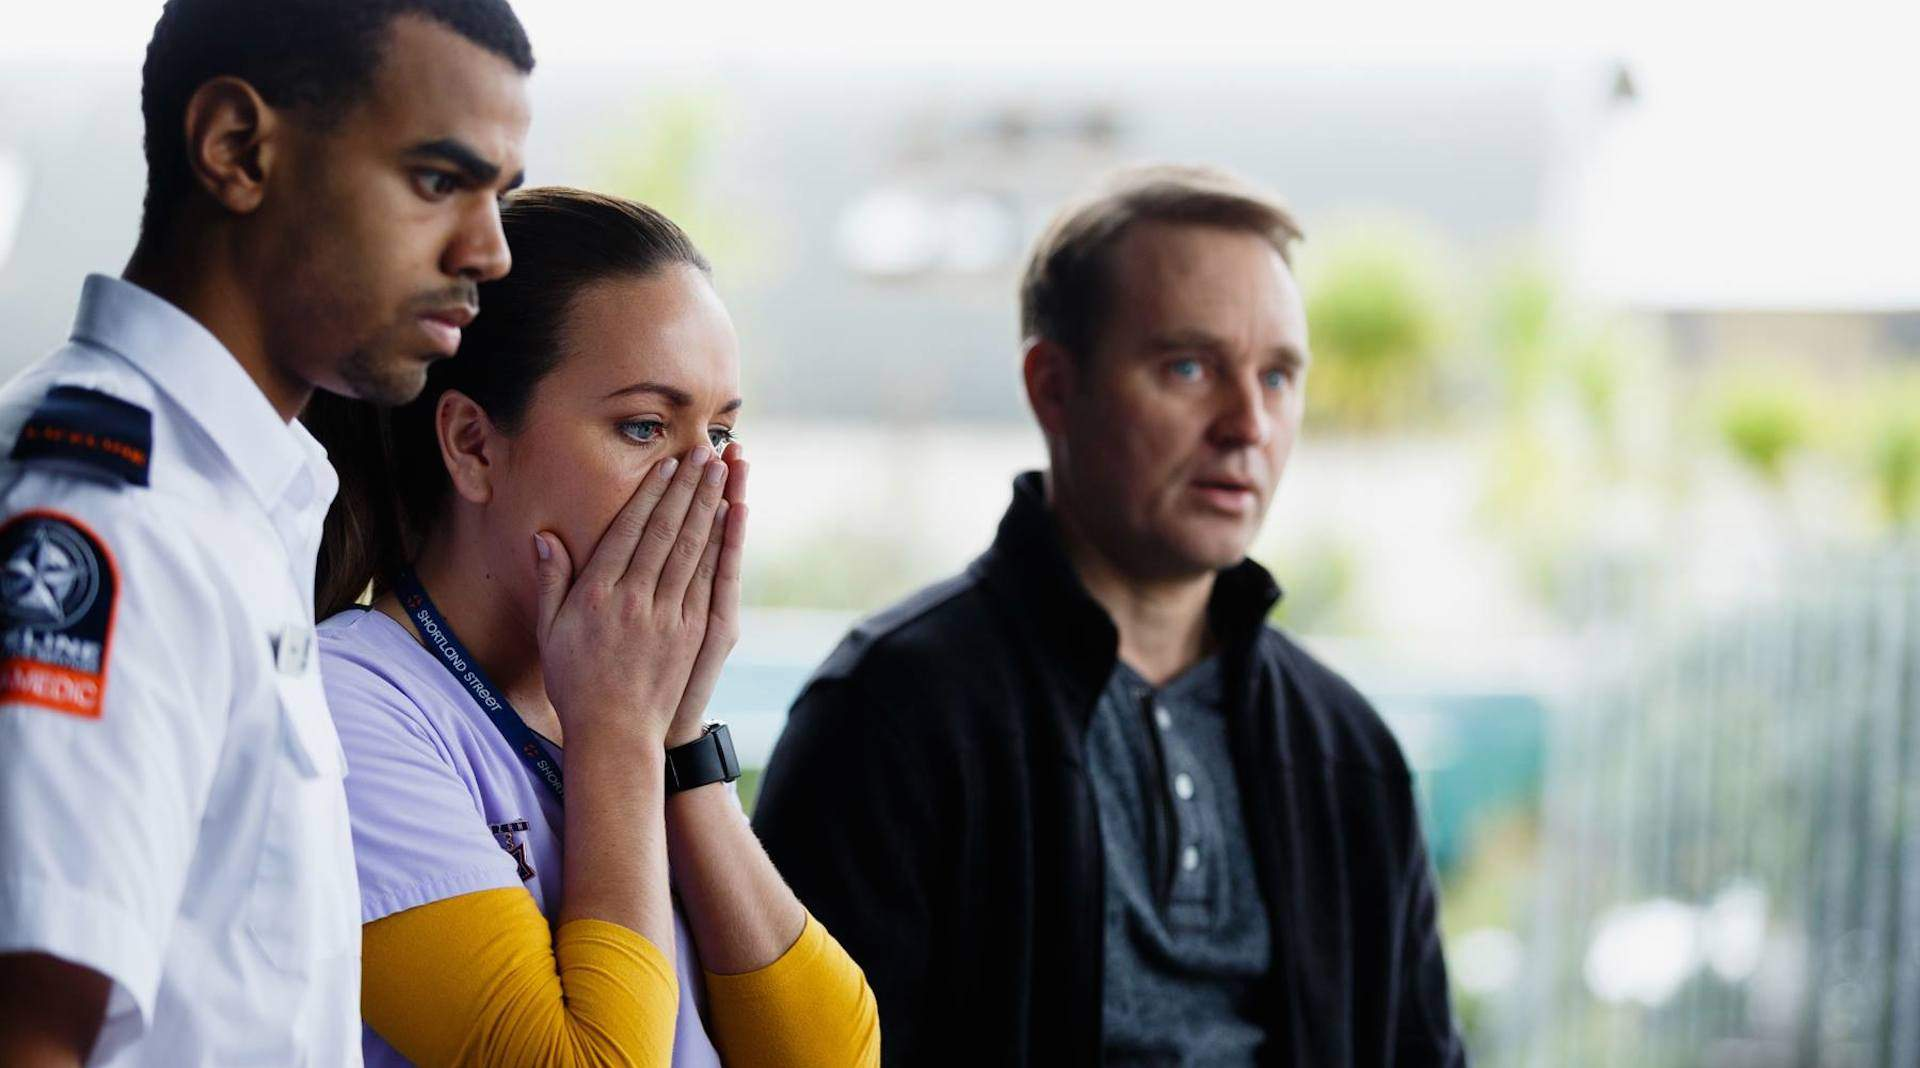 A Shortland Street Musical is Coming to Auckland Arts Festival